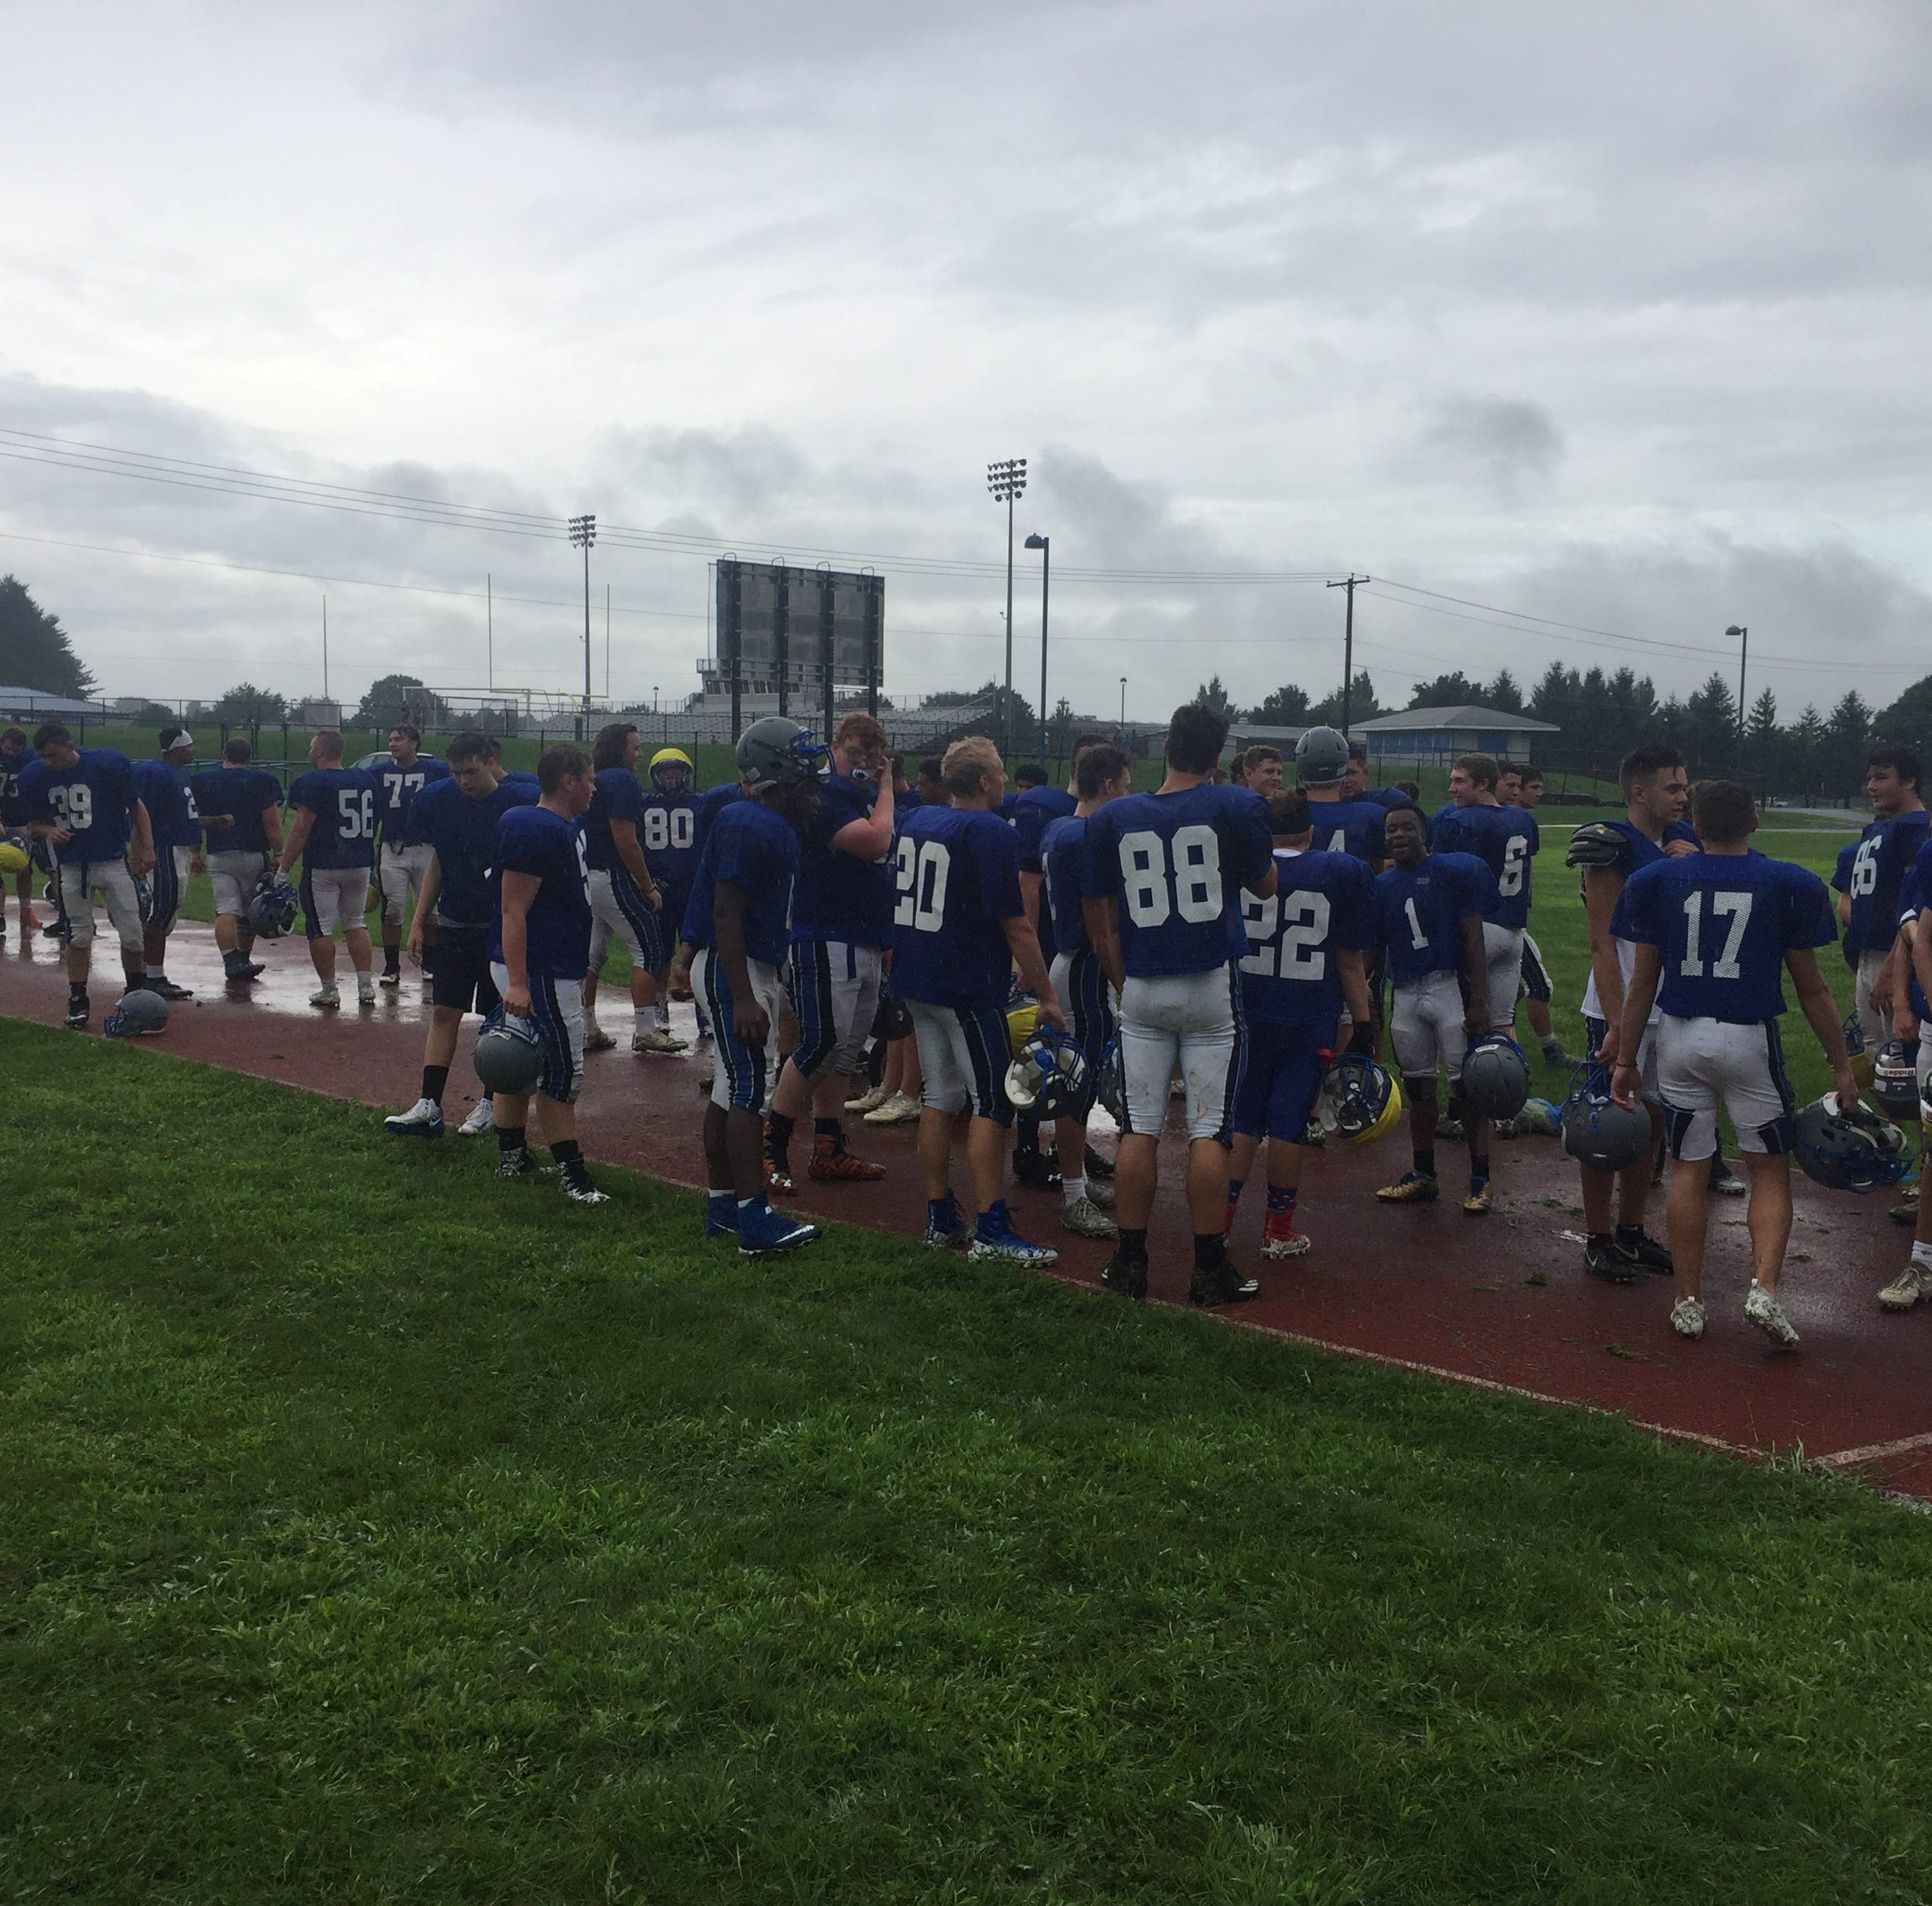 Rainy start fails to dampen spirits on first day of fall practice